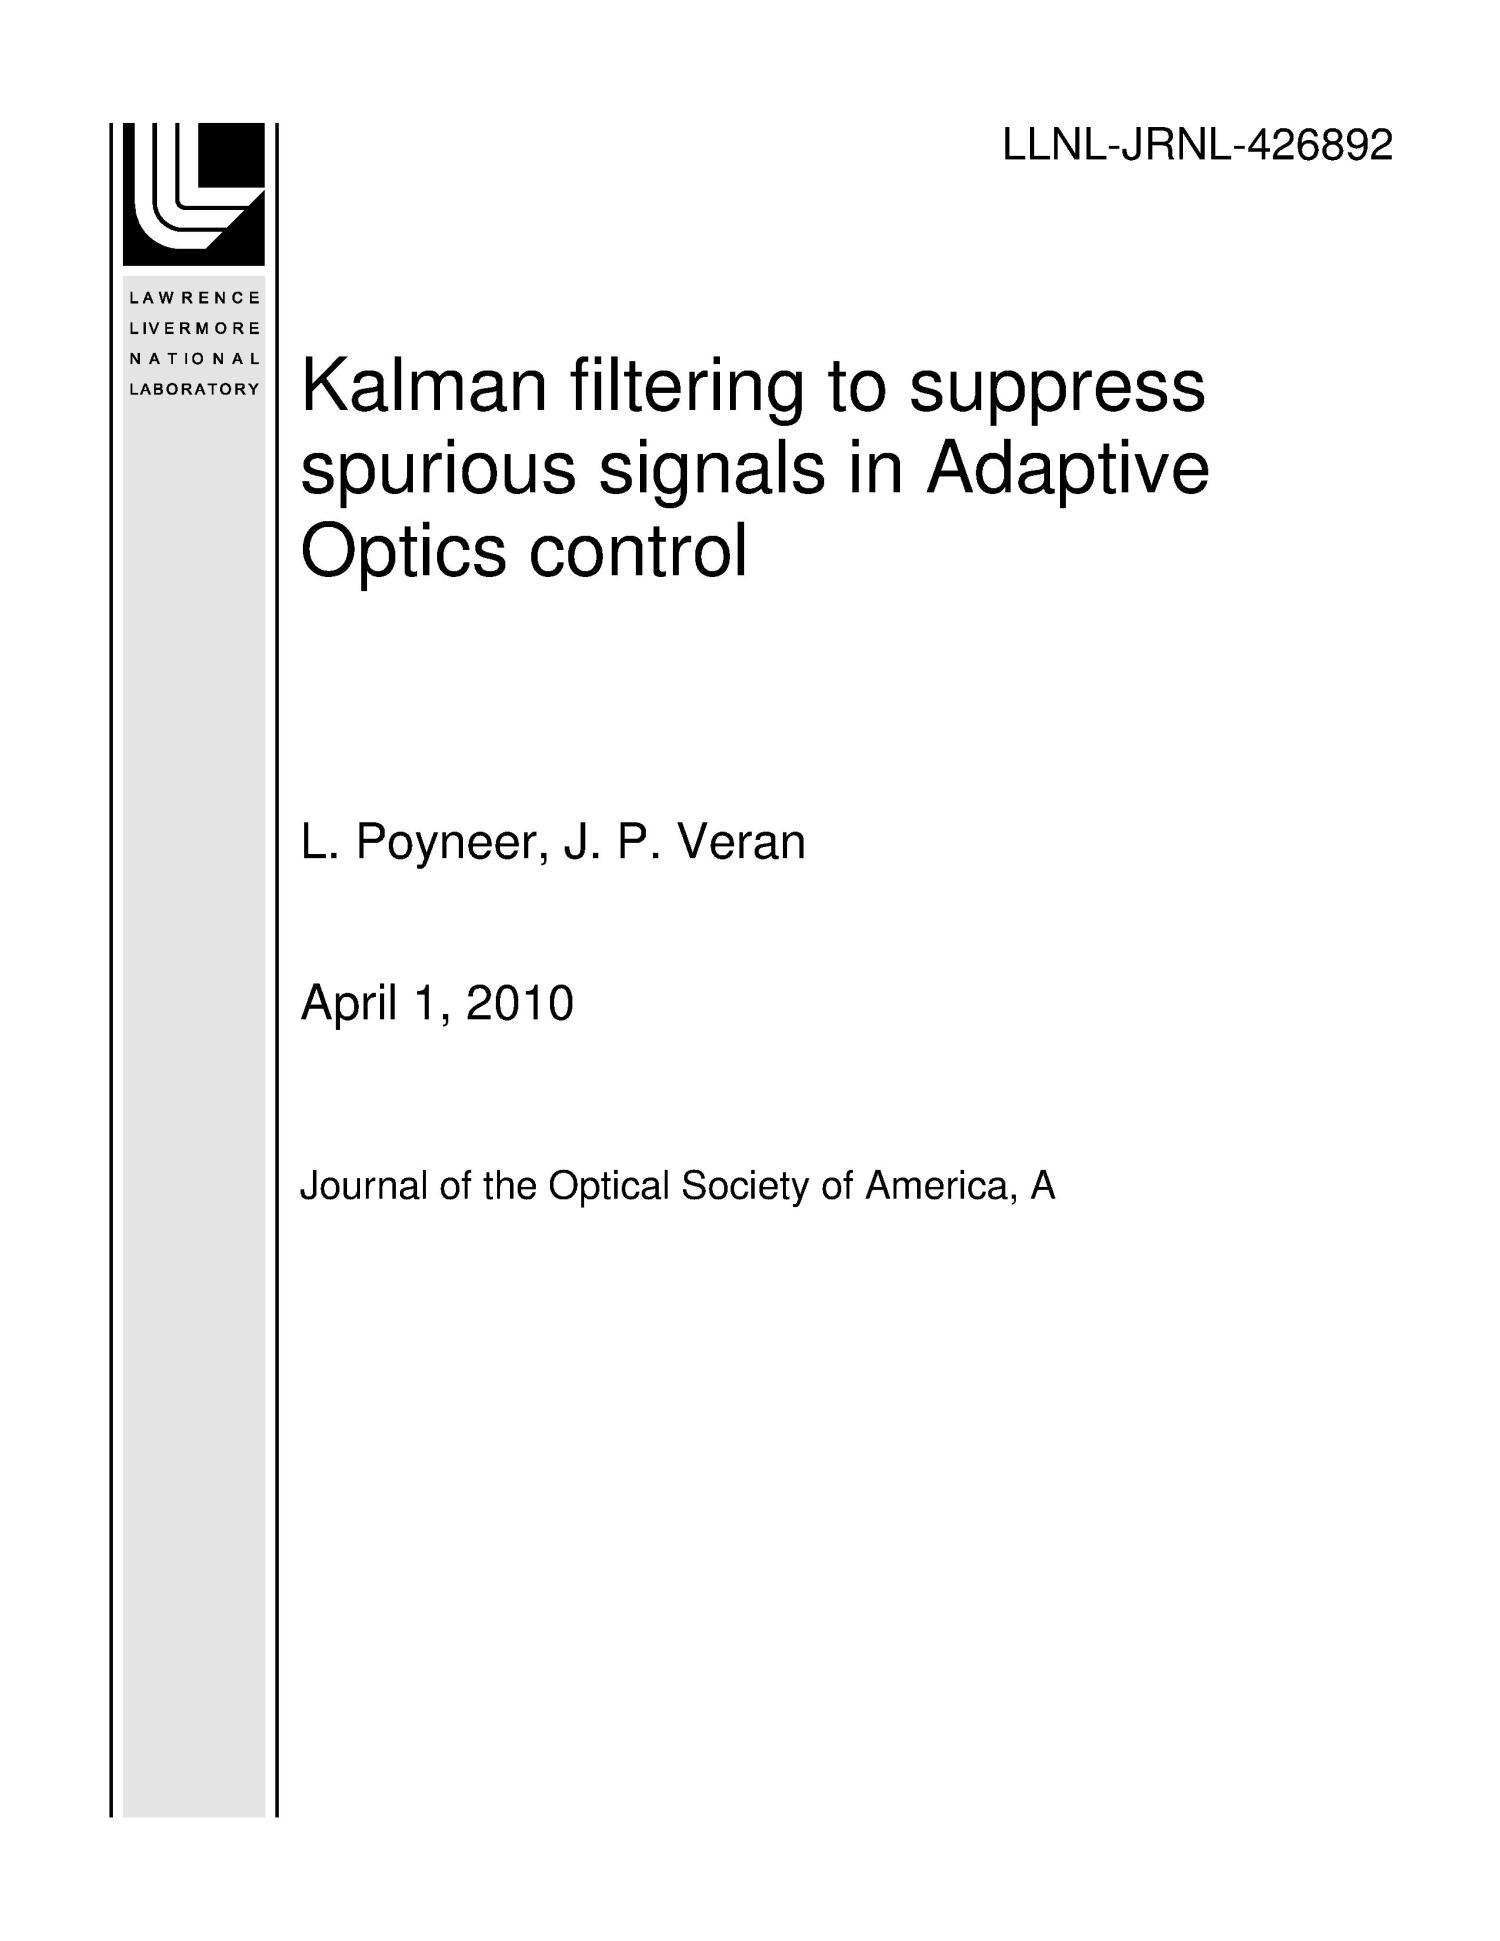 Kalman filtering to suppress spurious signals in Adaptive Optics control                                                                                                      [Sequence #]: 1 of 54